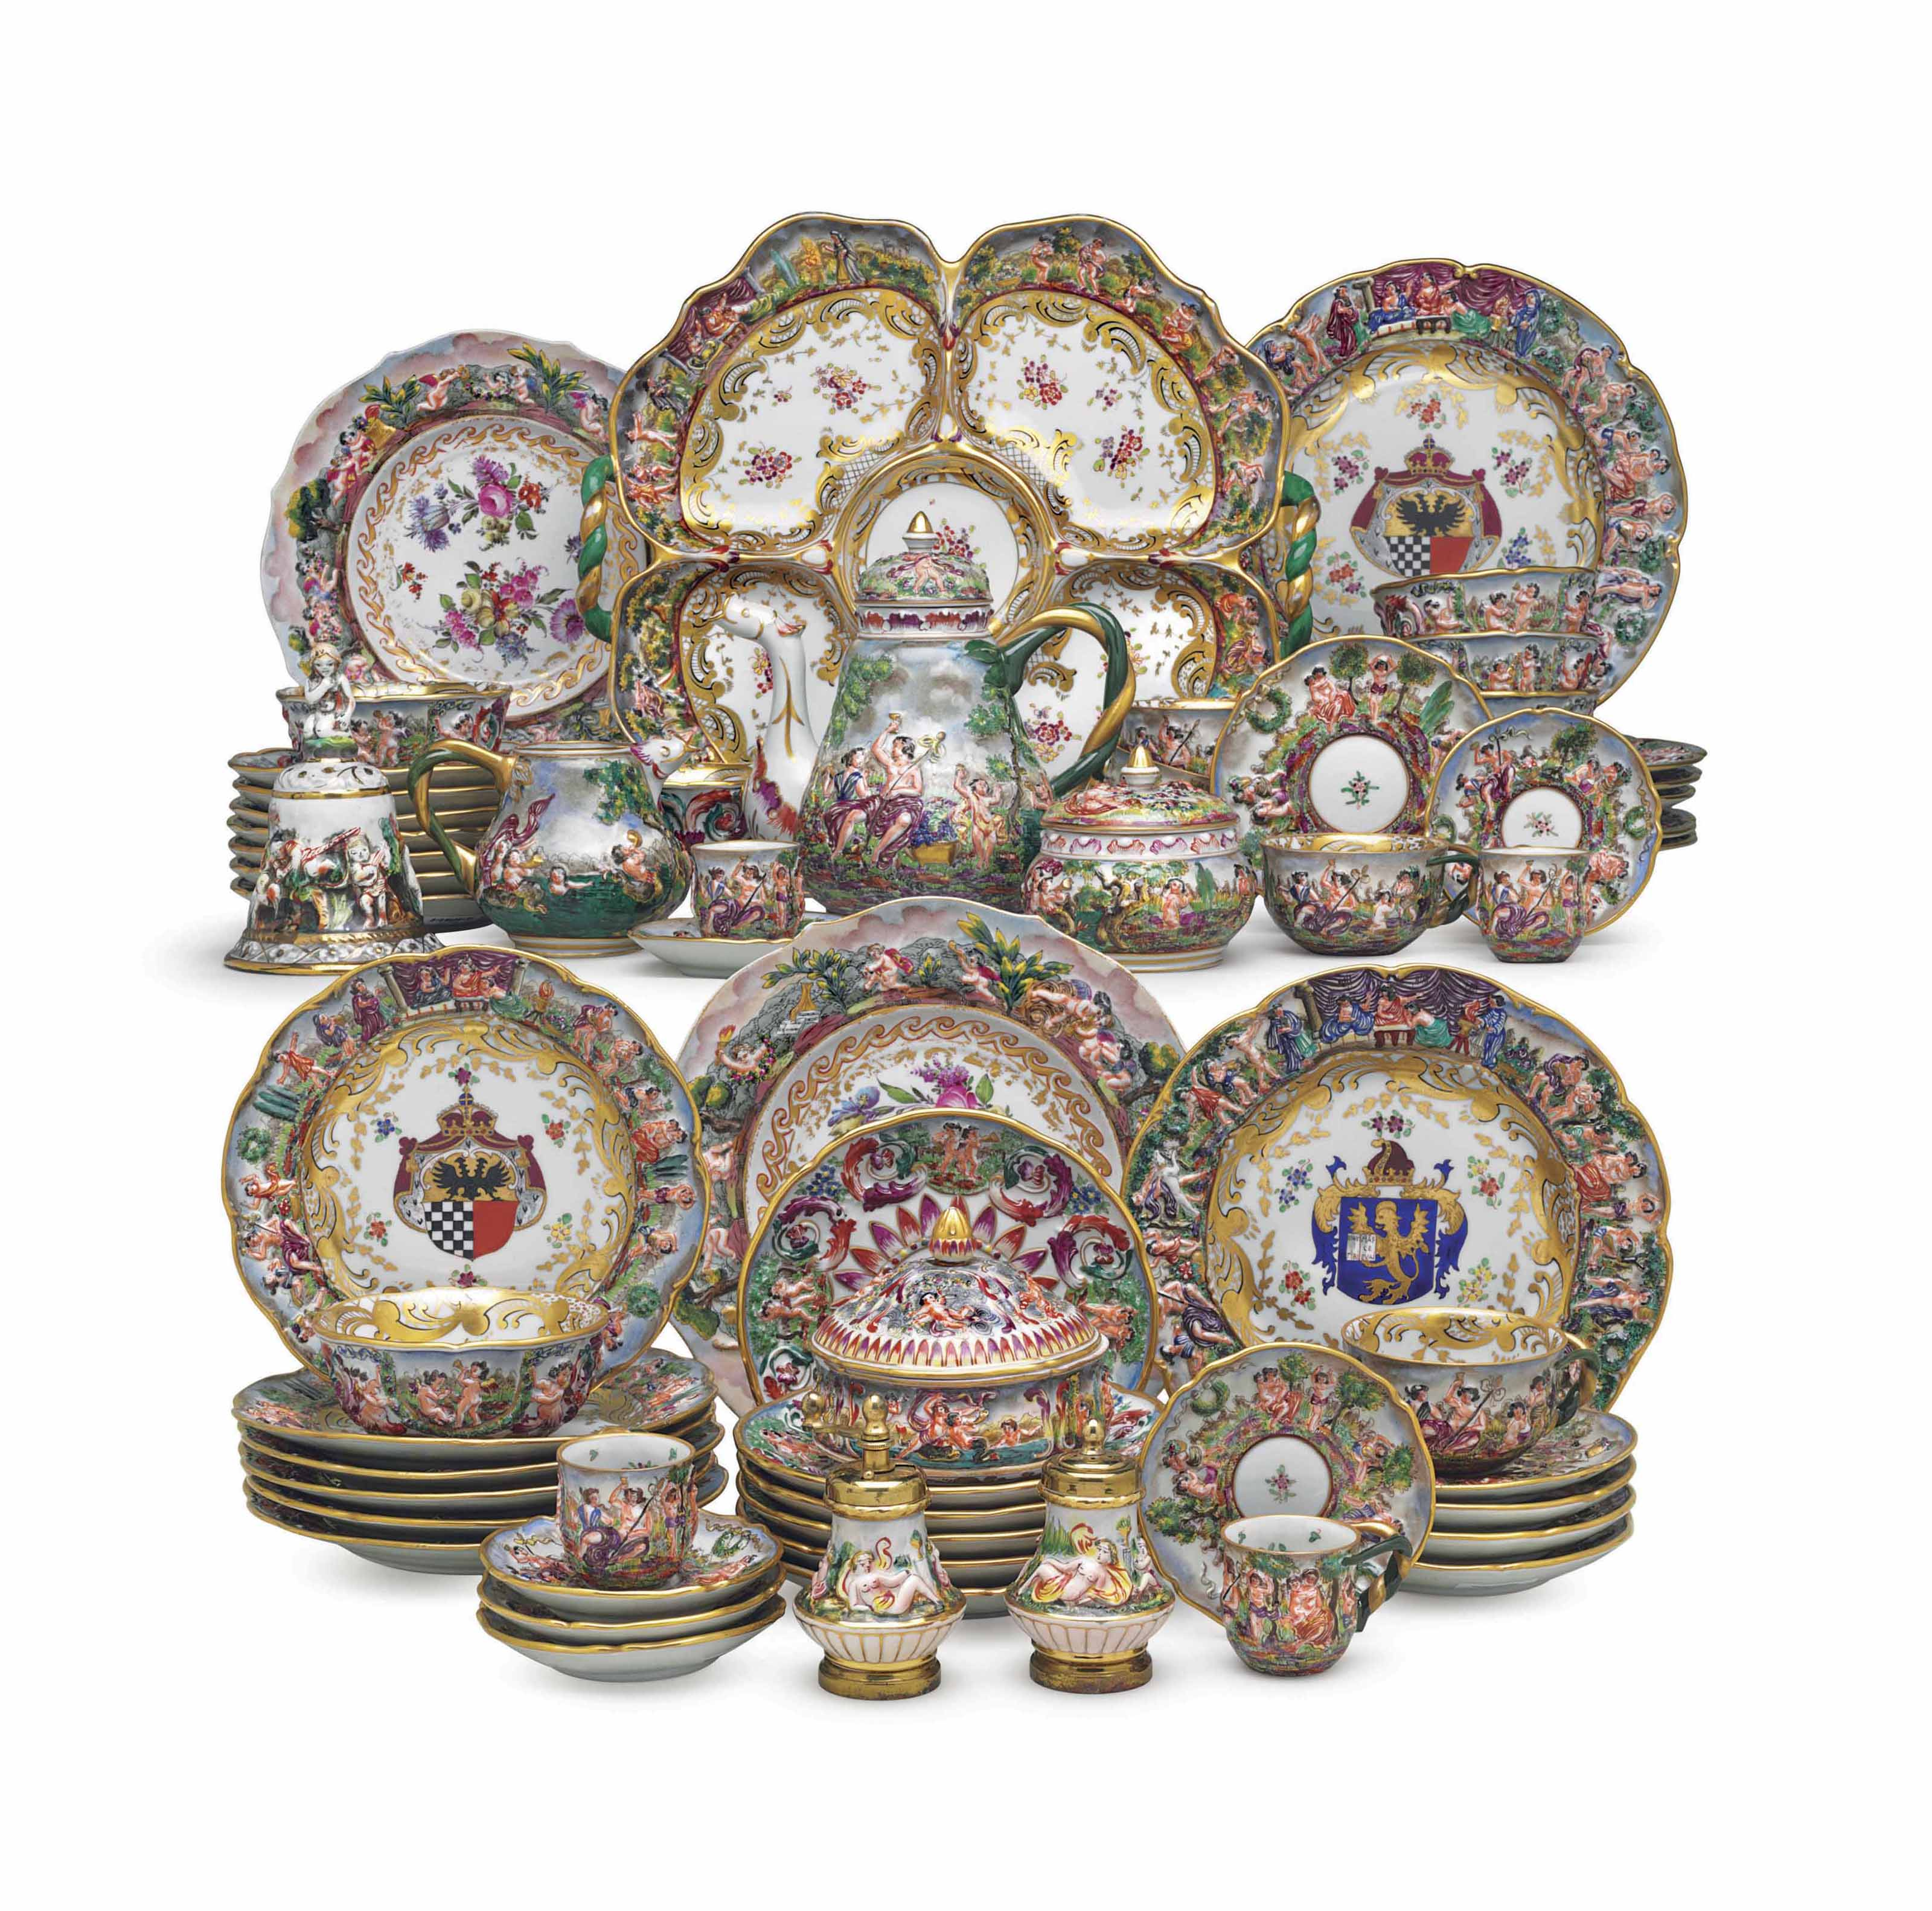 An assembled capodimonte style porcelain dinner and tea service an assembled capodimonte style thecheapjerseys Images